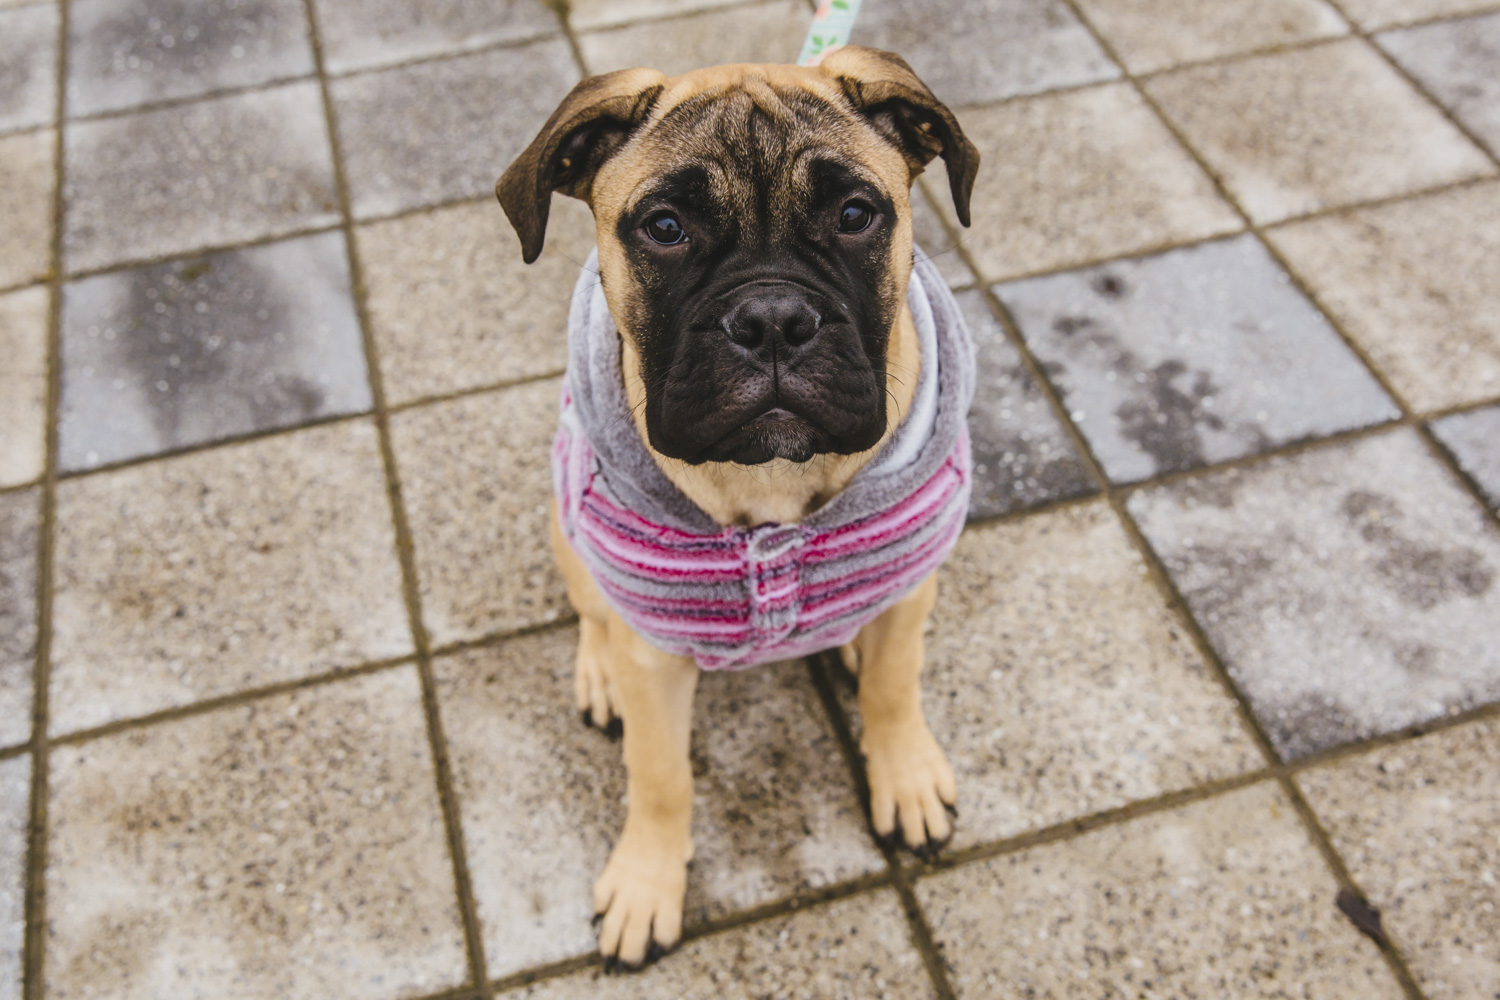 Heeeeere's Nelly! This little cutie is a six month old Bullmastiff and is the biggest pup in puppy class and lives in Eastlake with her parents. Nelly likes Woodlawn Dog Park, peanut butter, watching football with her family, treats, her roommate Dwayne who is a black lab and car rides. She dislikes getting her nails trimmed, not being able to reach the peanut butter jar and stairs.  You can follow Nelly's journey through life at @nellythebullmastiff. The Seattle RUFFined Spotlight is a weekly profile of local pets living and loving life in the PNW. If you or someone you know has a pet you'd like featured, email us at hello@seattlerefined.com or tag #SeattleRUFFined and your furbaby could be the next spotlighted! (Image: Sunita Martini / Seattle Refined).